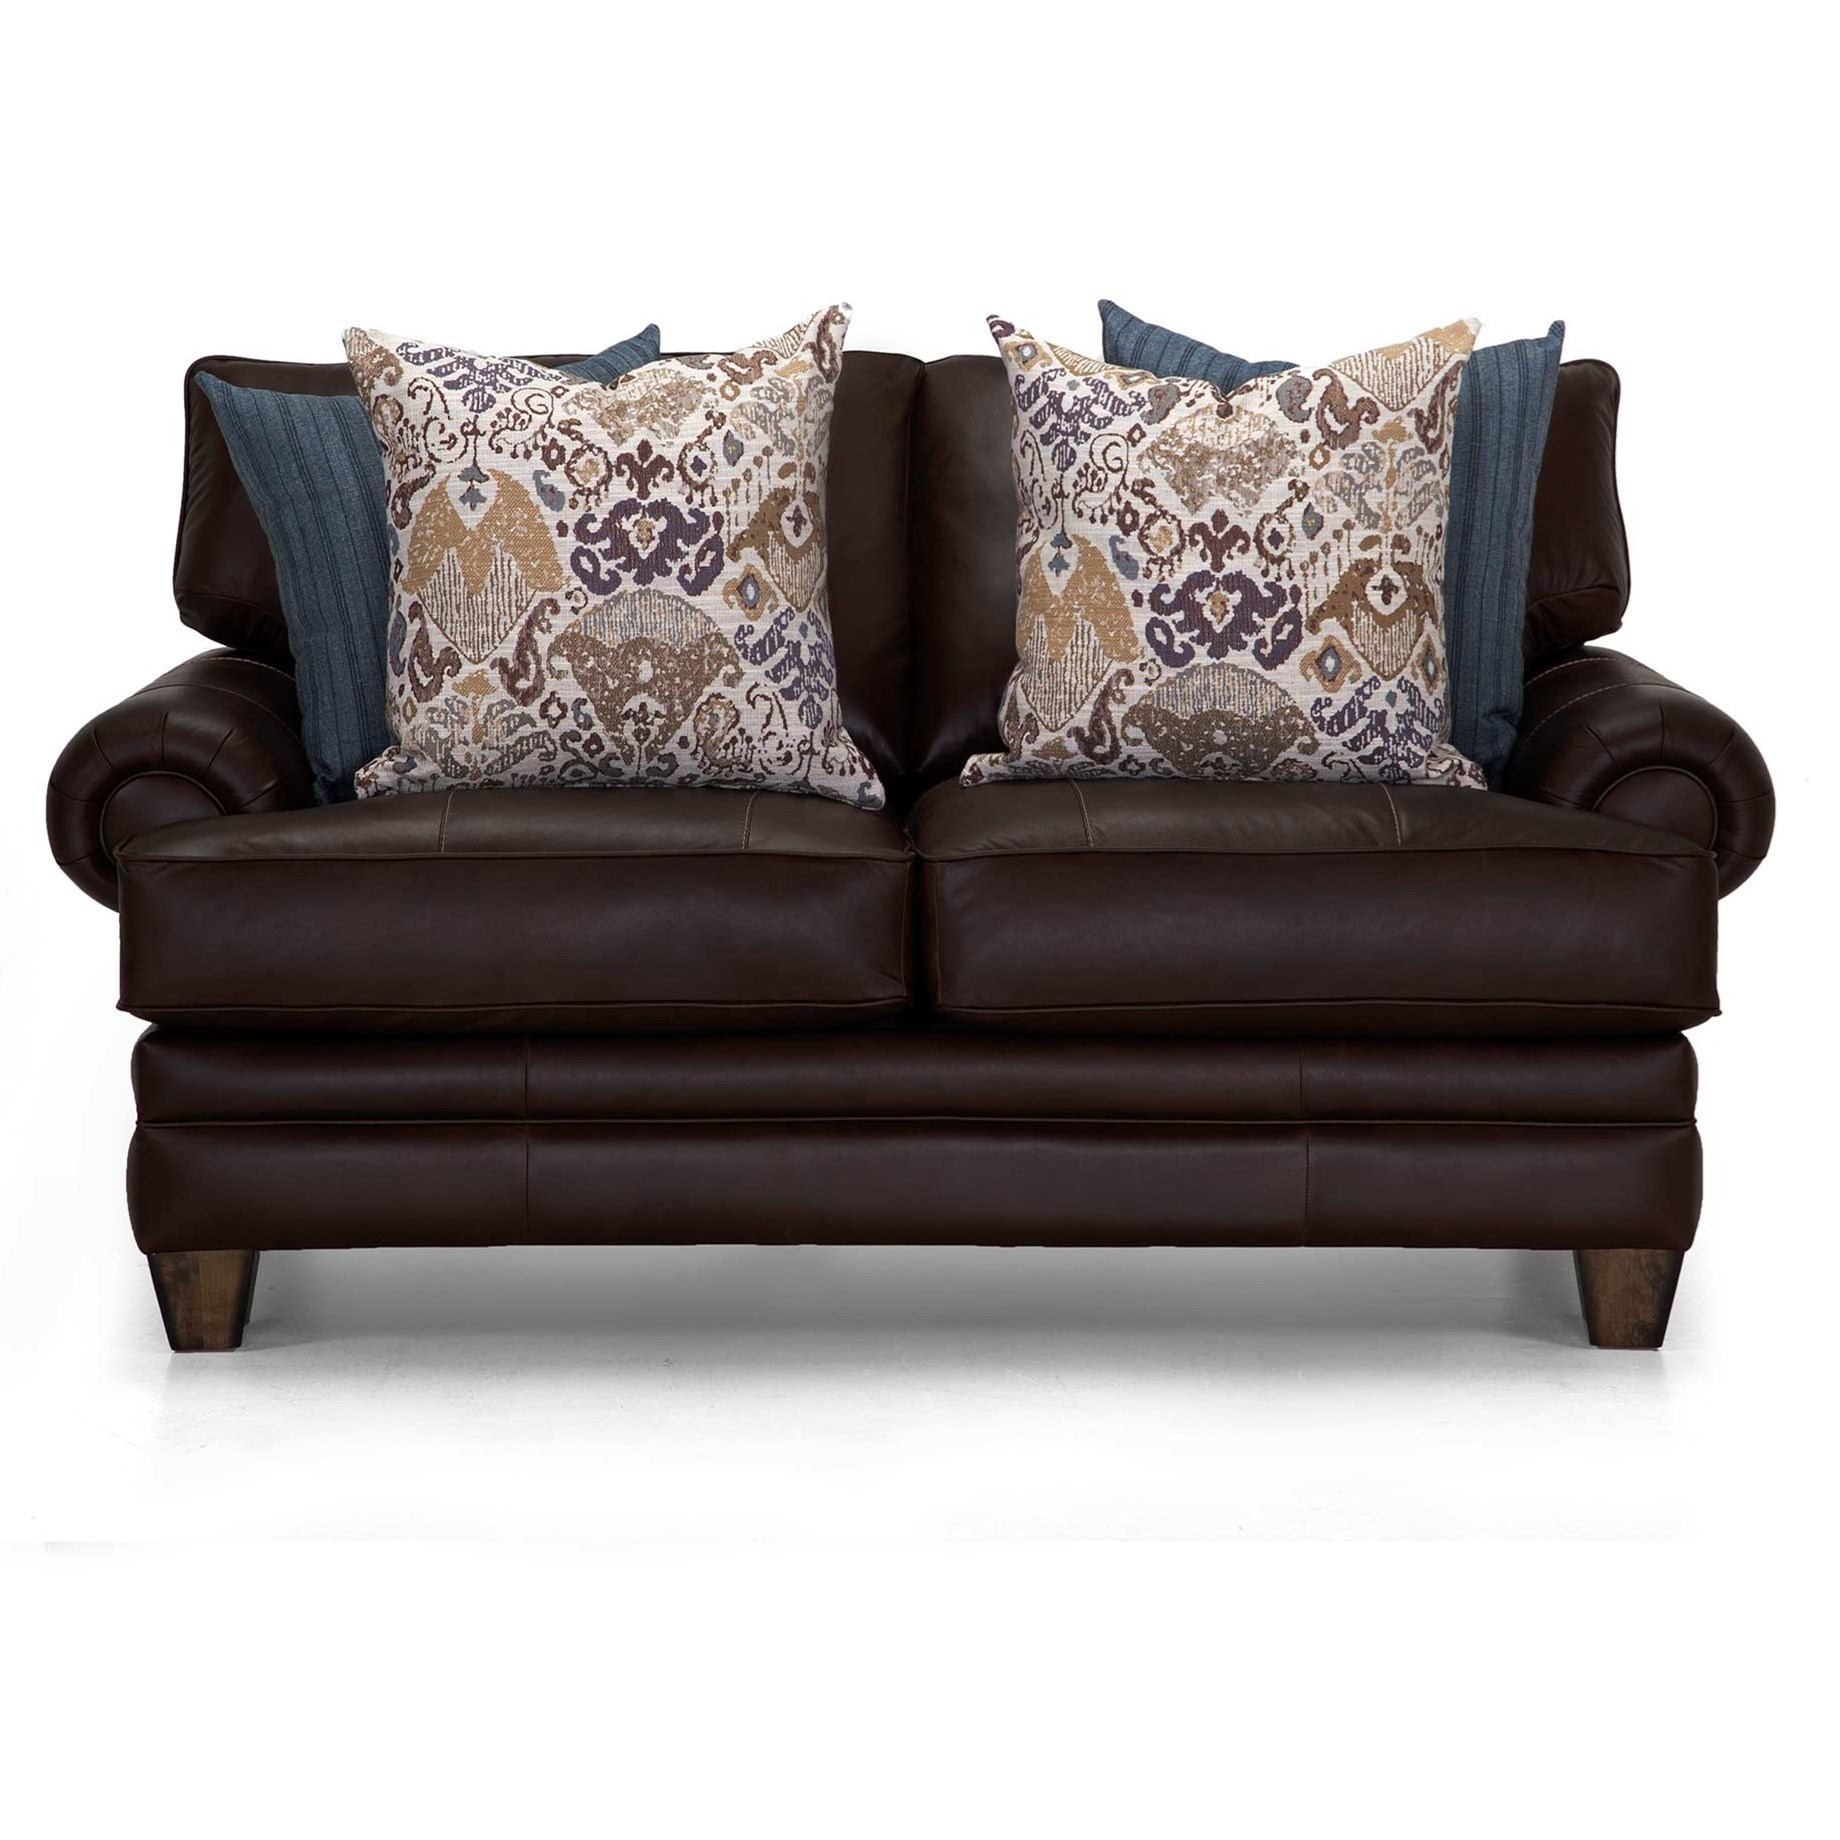 957 Loveseat by Franklin at Van Hill Furniture